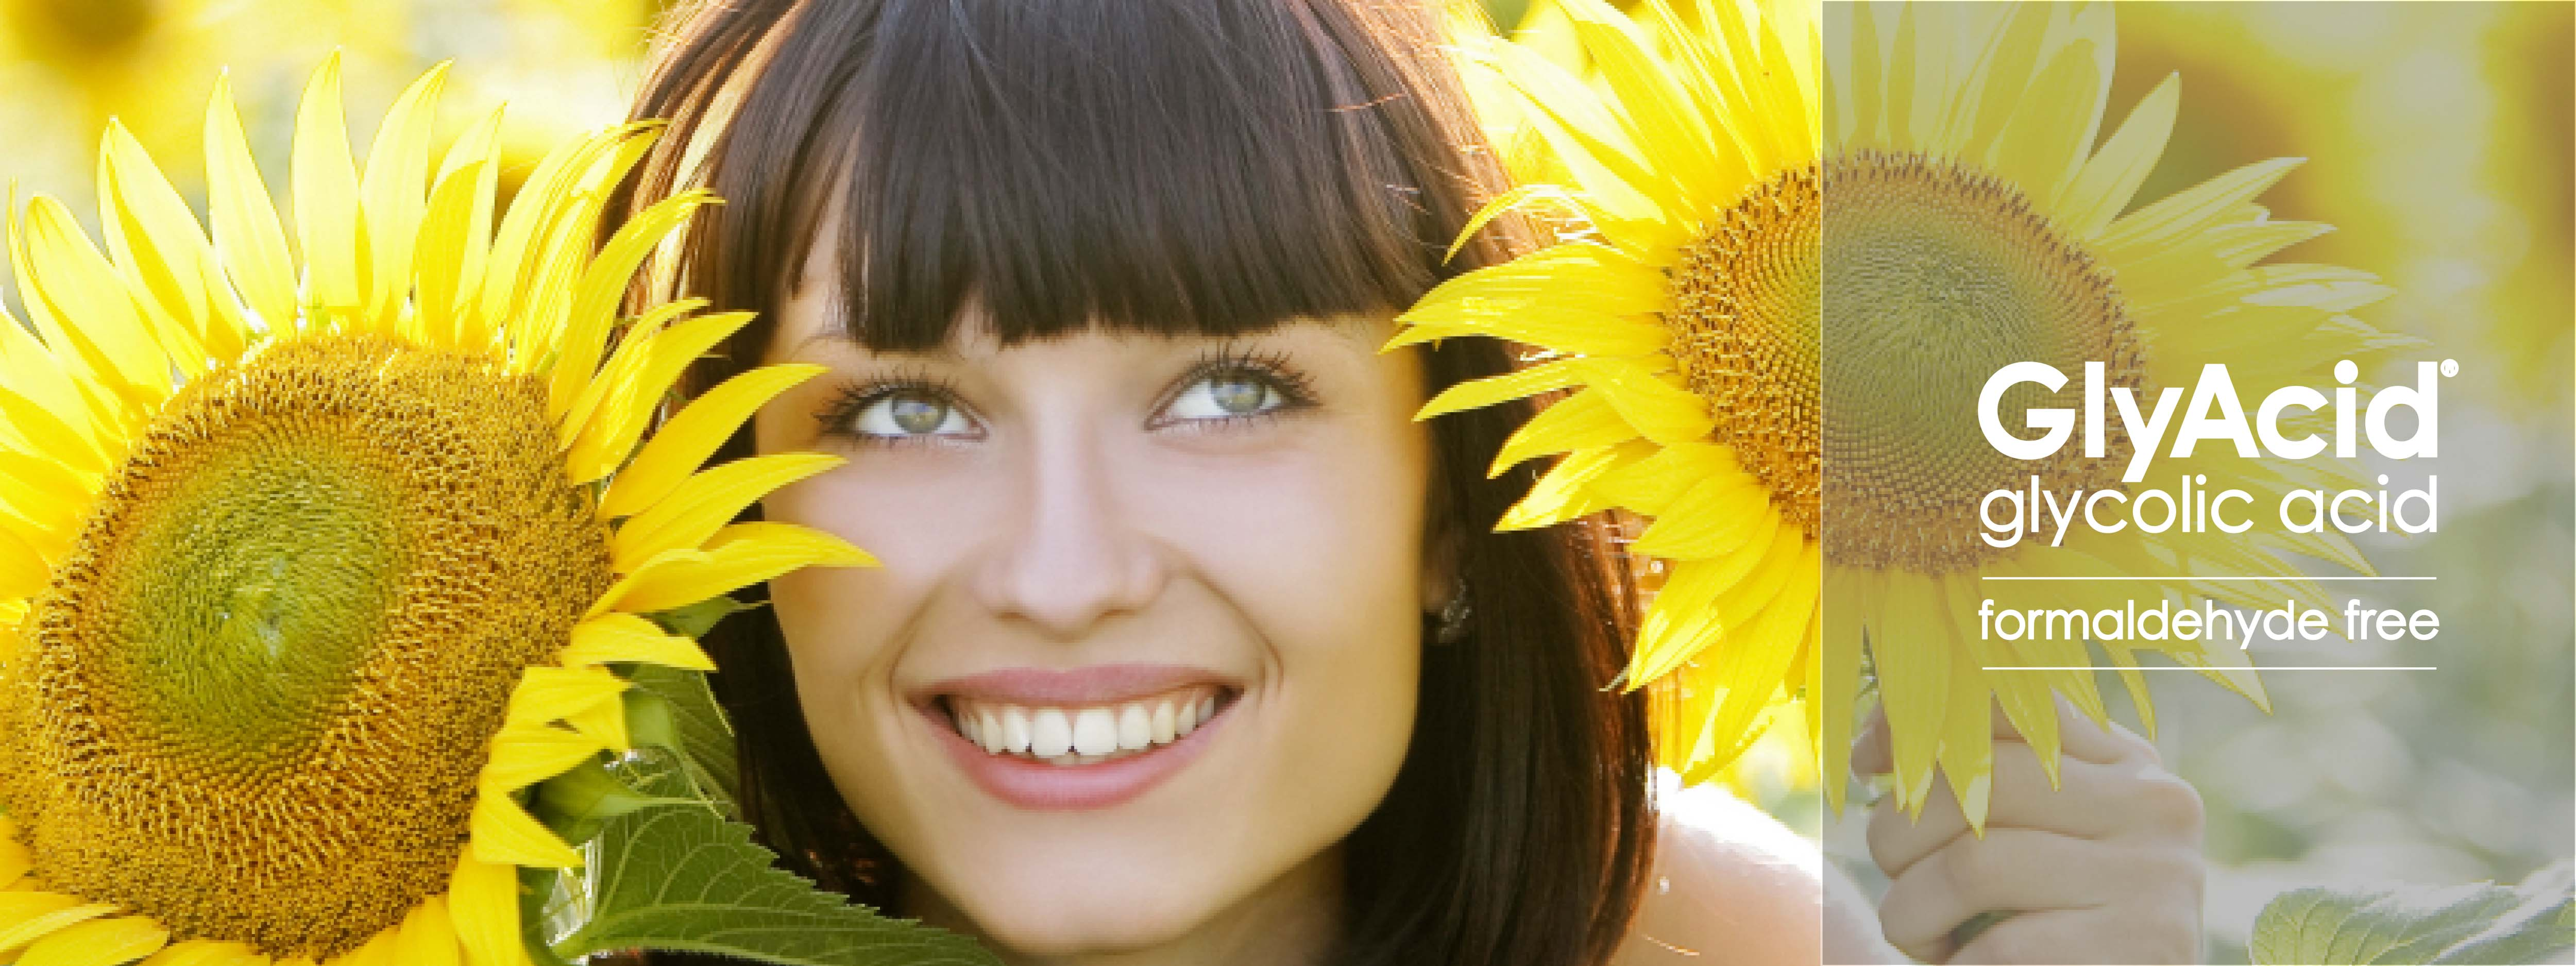 "A woman with two sunflowers beside her face, smiling and looking up with her eyes. Beside her it says ""GlyAcid glycol acid formaldehyde free"""